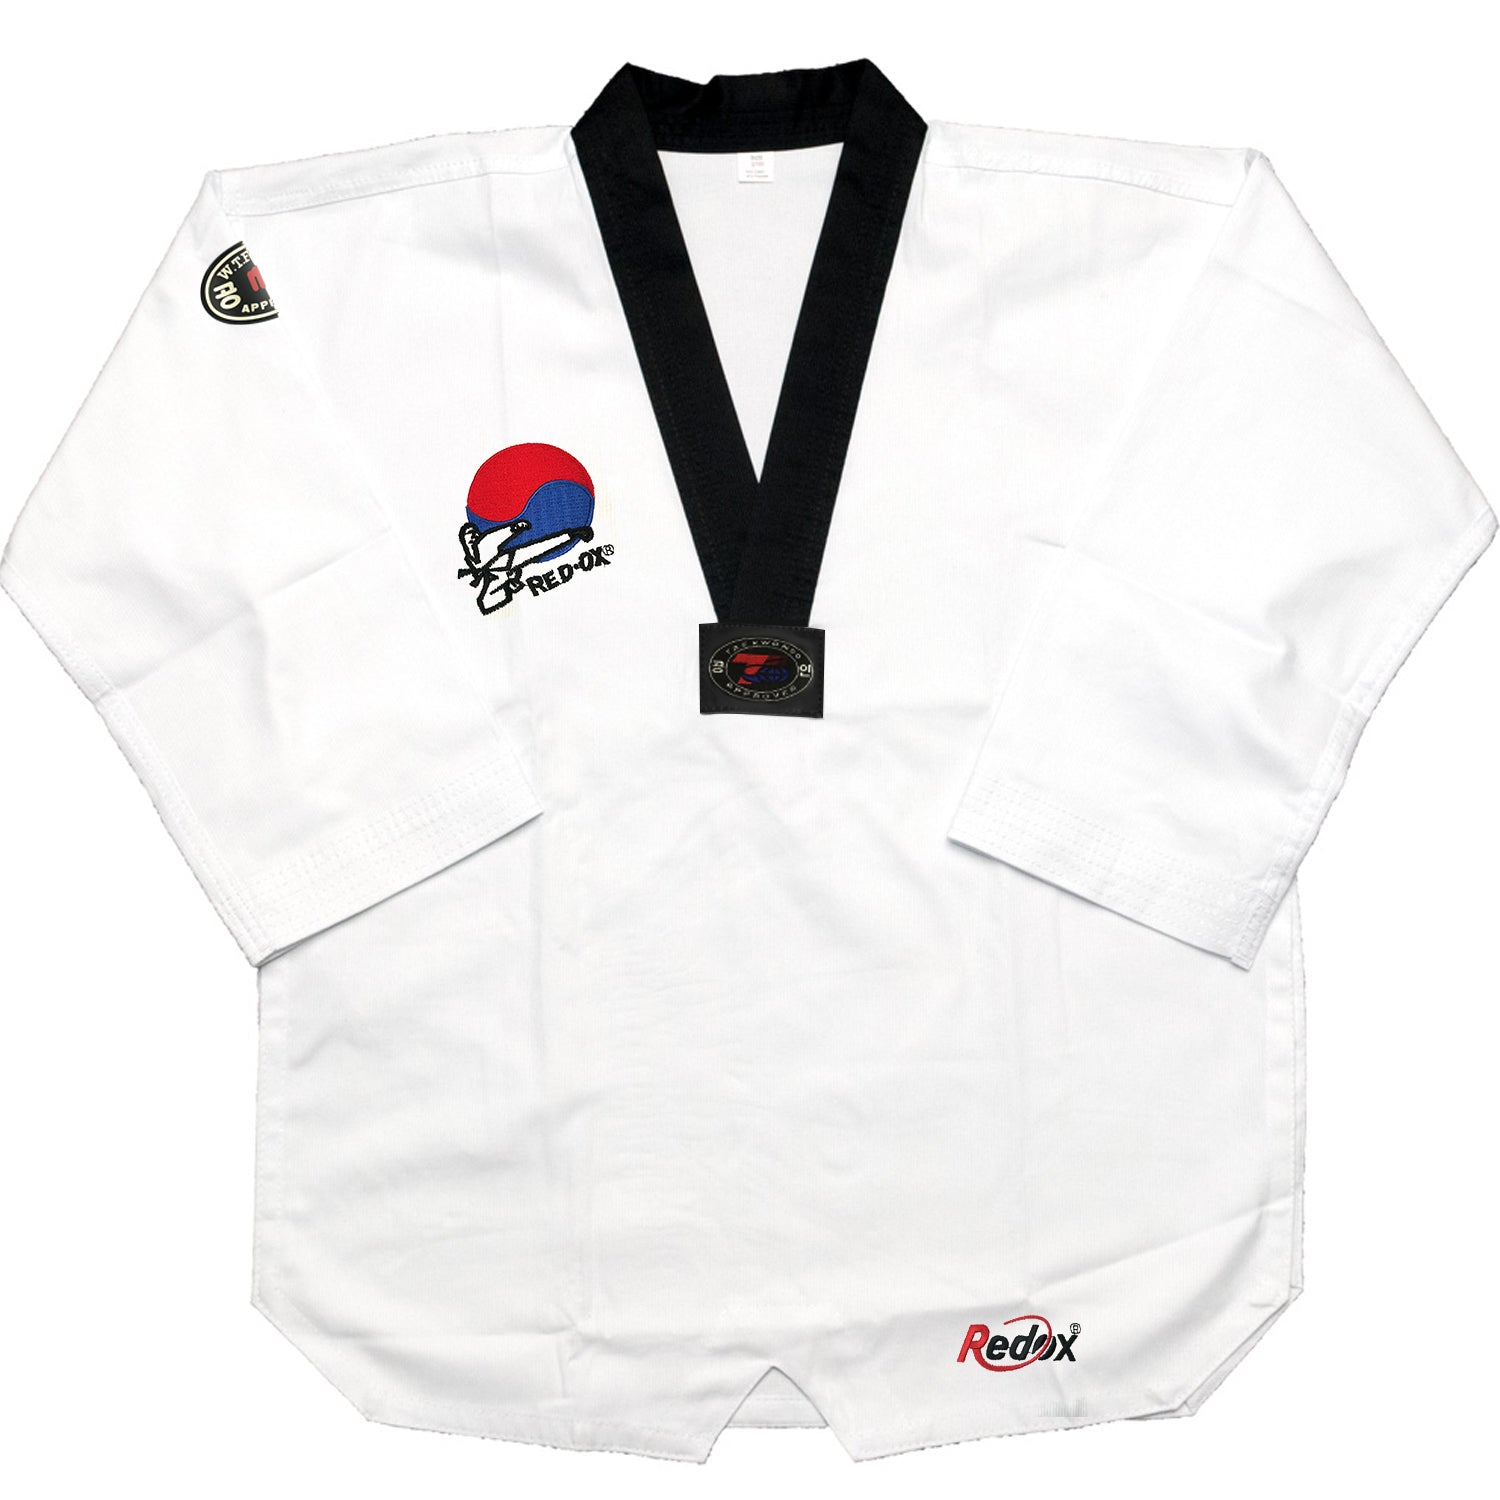 AAMA Redox Pro Black V-Neck Taekwondo Uniform